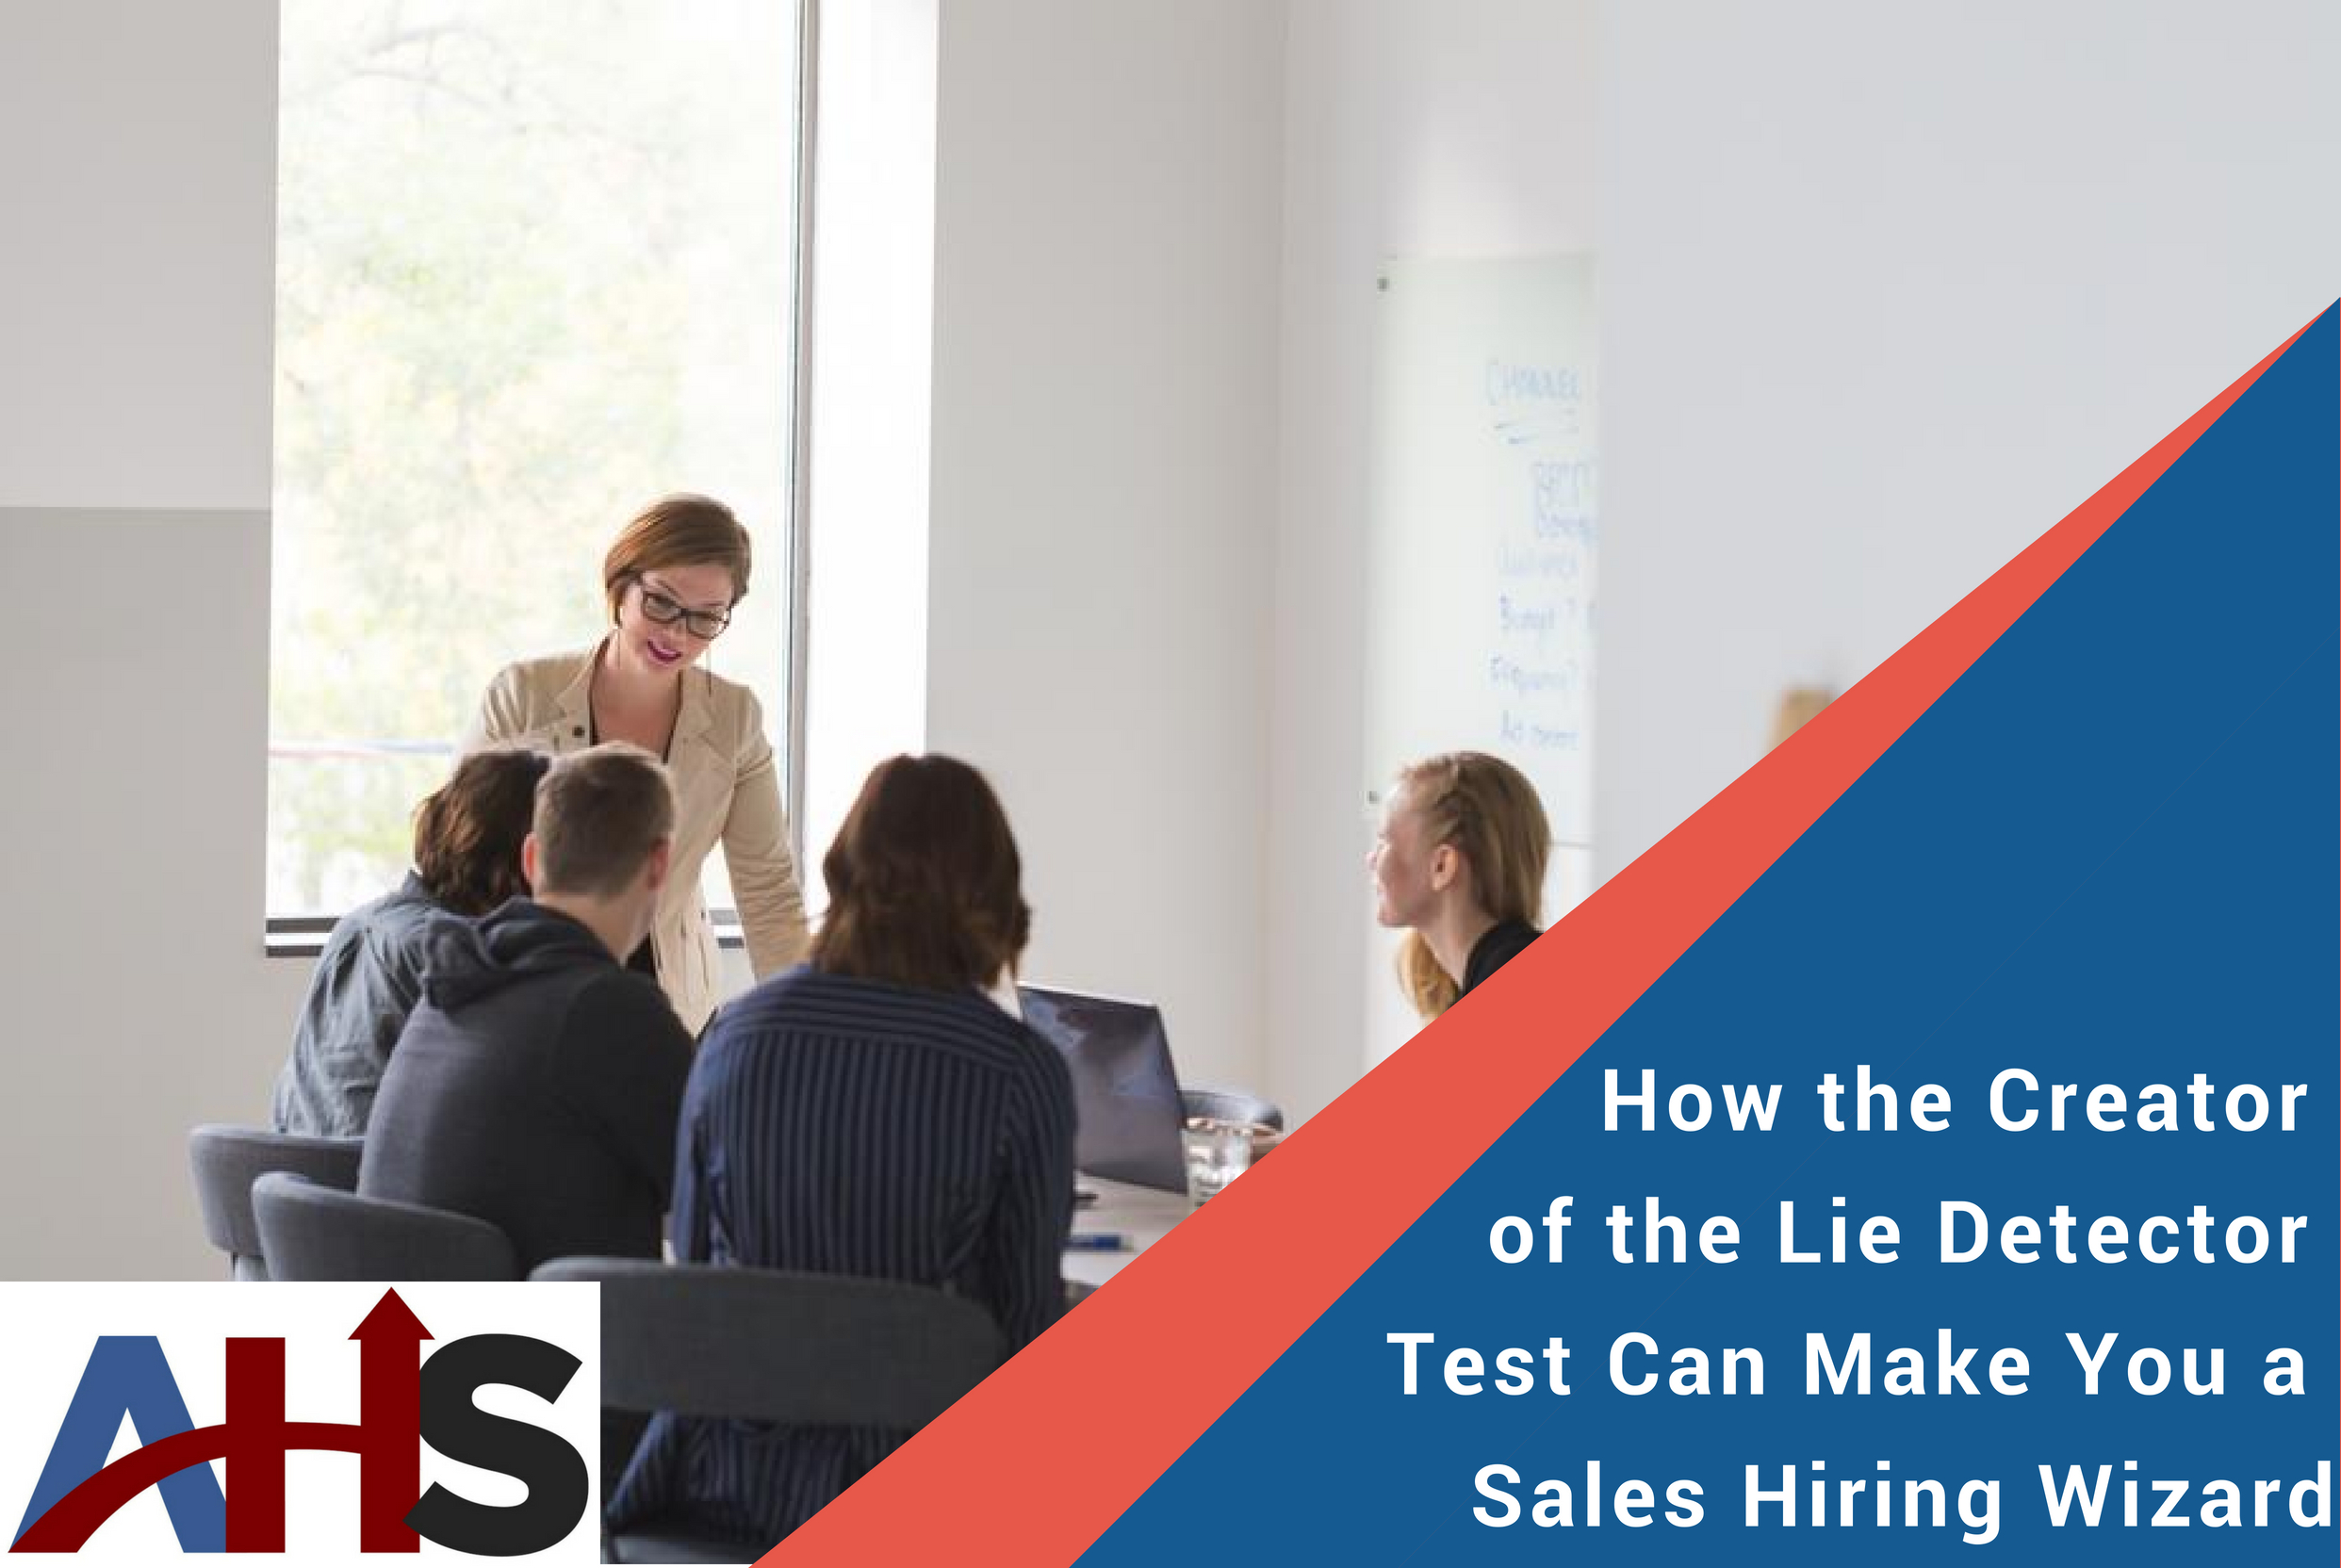 How the Creator of the Lie Detector Test Can Make You a Sales Hiring Wizard